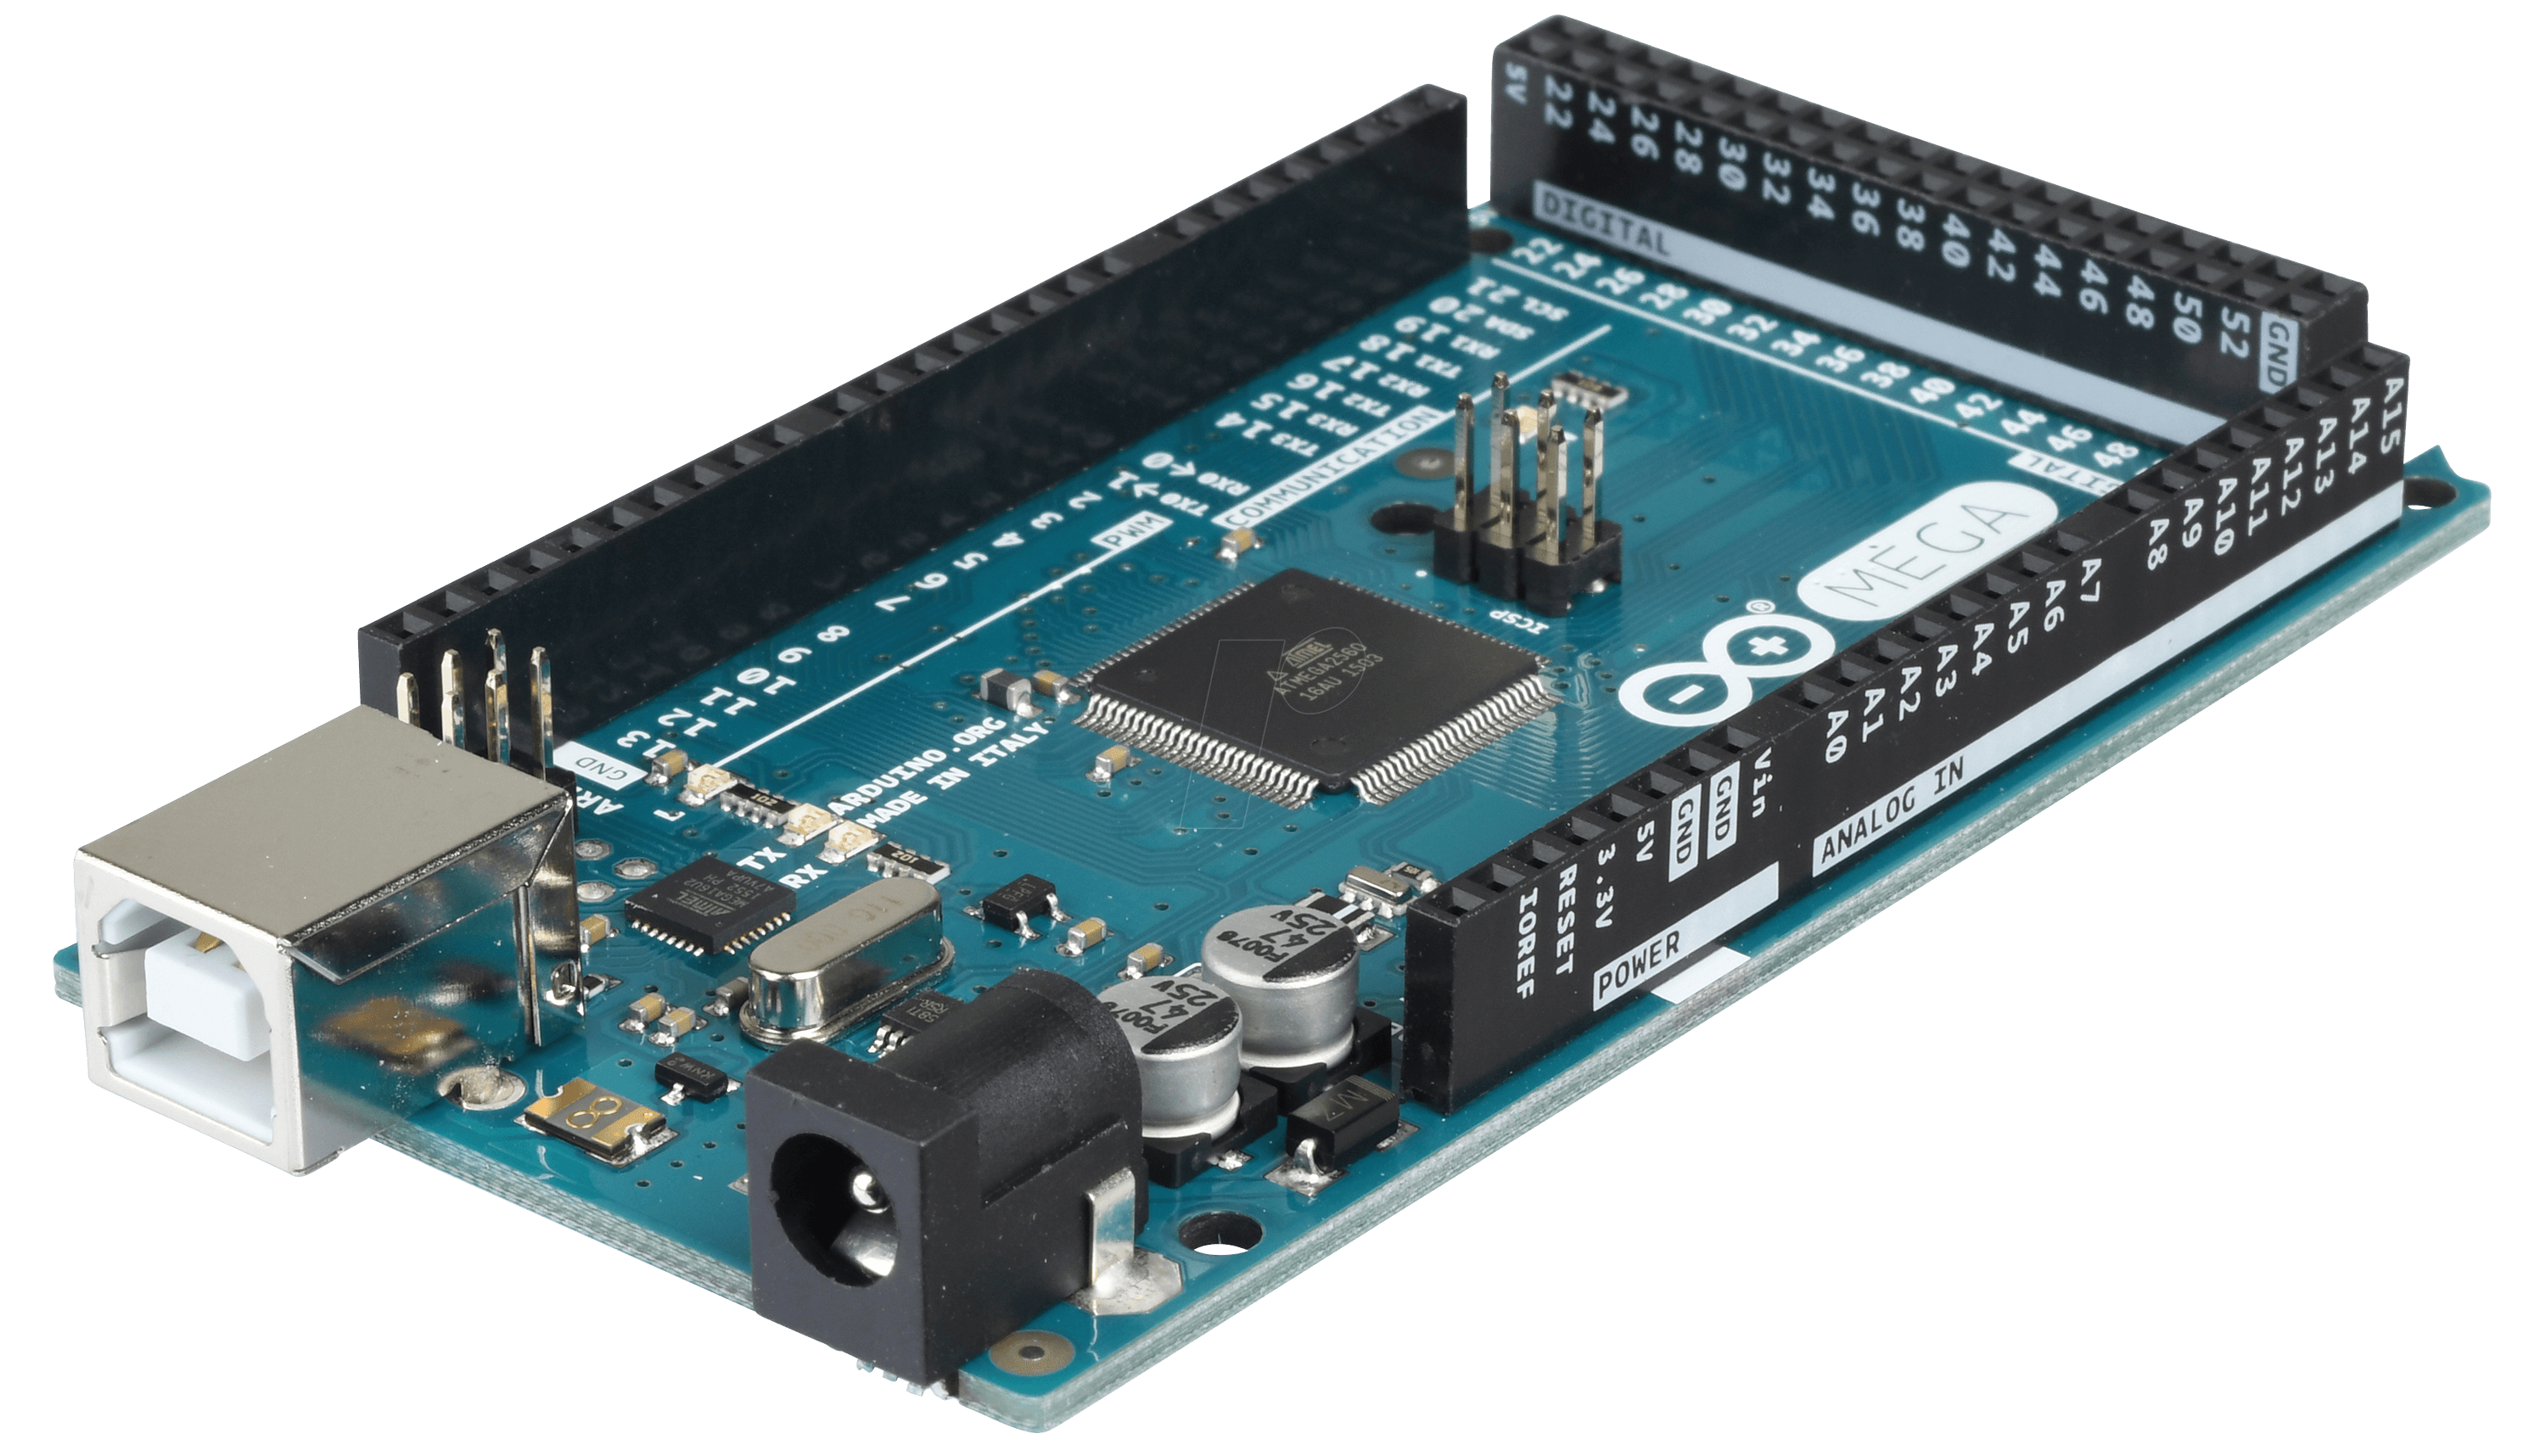 arduino uno schematic html with Index on Rf Module With Arduino And 89c51 Microcontroller in addition Connect Arduino By Keypad And Lcd furthermore Weeks6 11 in addition Index likewise Esp8266 Wangtongze Arduino Uno Shield.